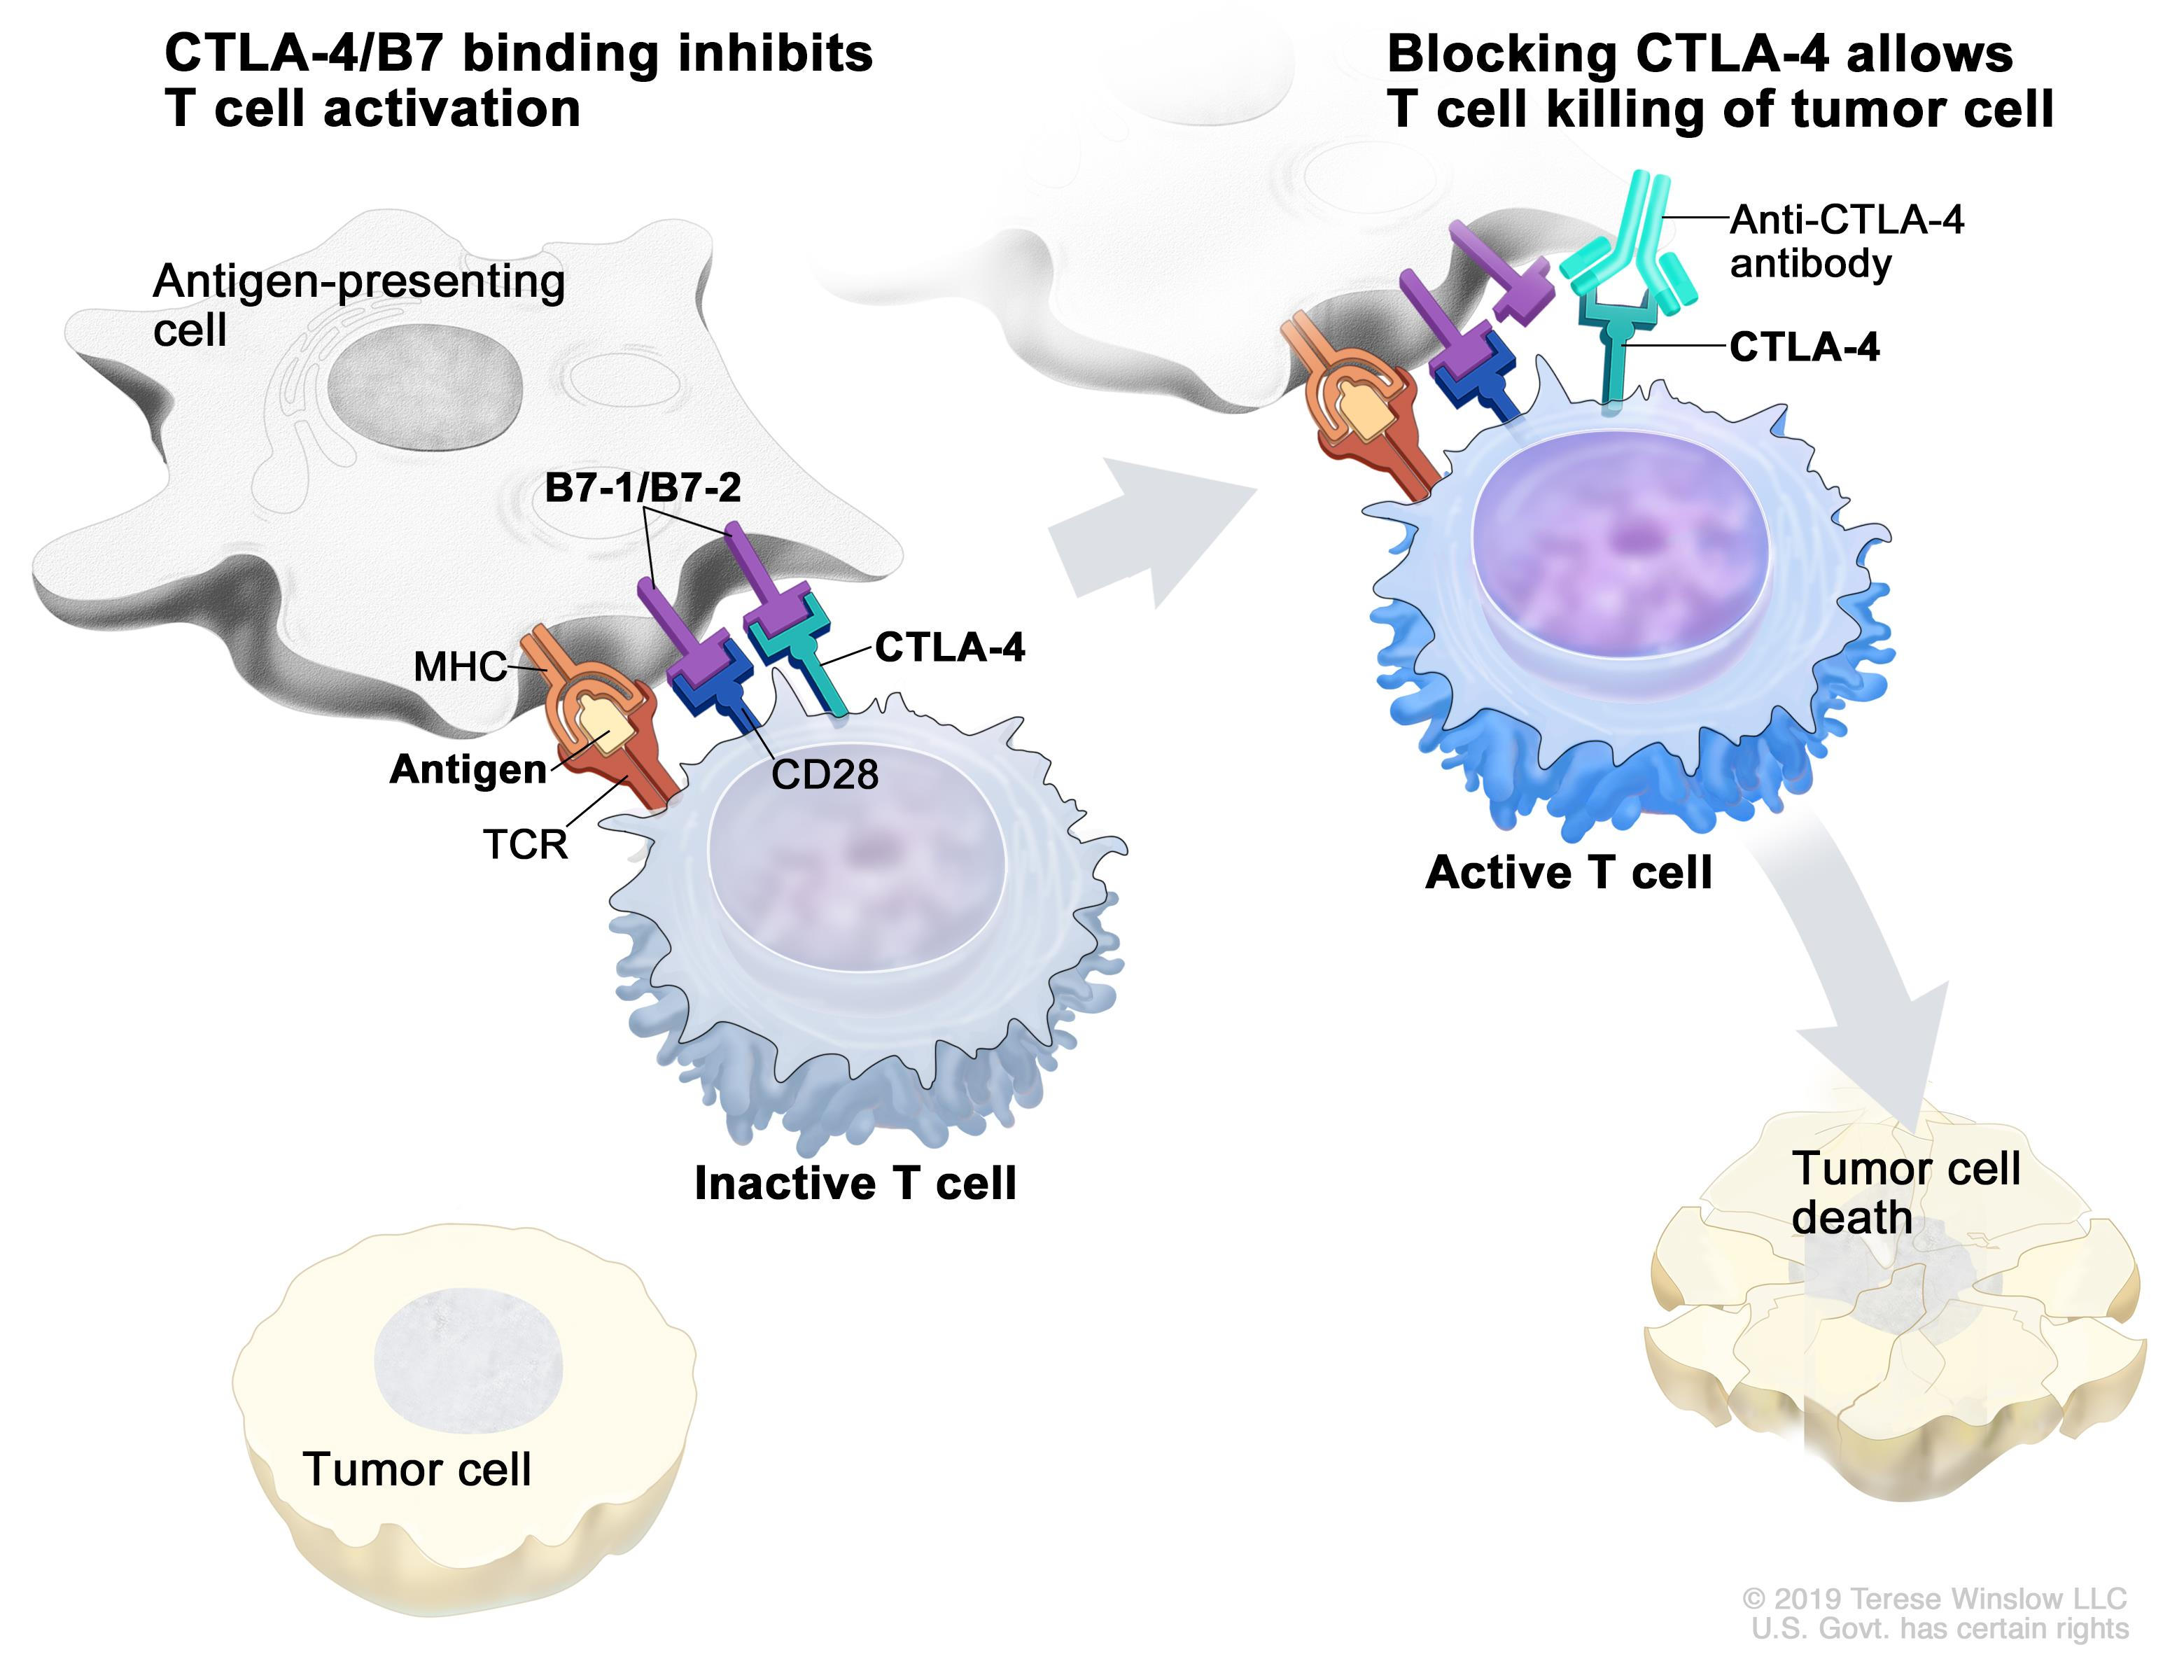 Immune checkpoint inhibitor; the panel on the left shows the binding of proteins B7-1/B7-2 (on the tumor cell) to CTLA-4 (on the T cell), which keeps T cells from killing tumor cells in the body. Also shown are a tumor cell antigen and T cell receptor. The panel on the right shows immune checkpoint inhibitors (anti-B7-1/B7-2 and anti-CTLA-4) blocking the binding of B7-1/B7-2 to CTLA-4, which allows the T cells to kill tumor cells.